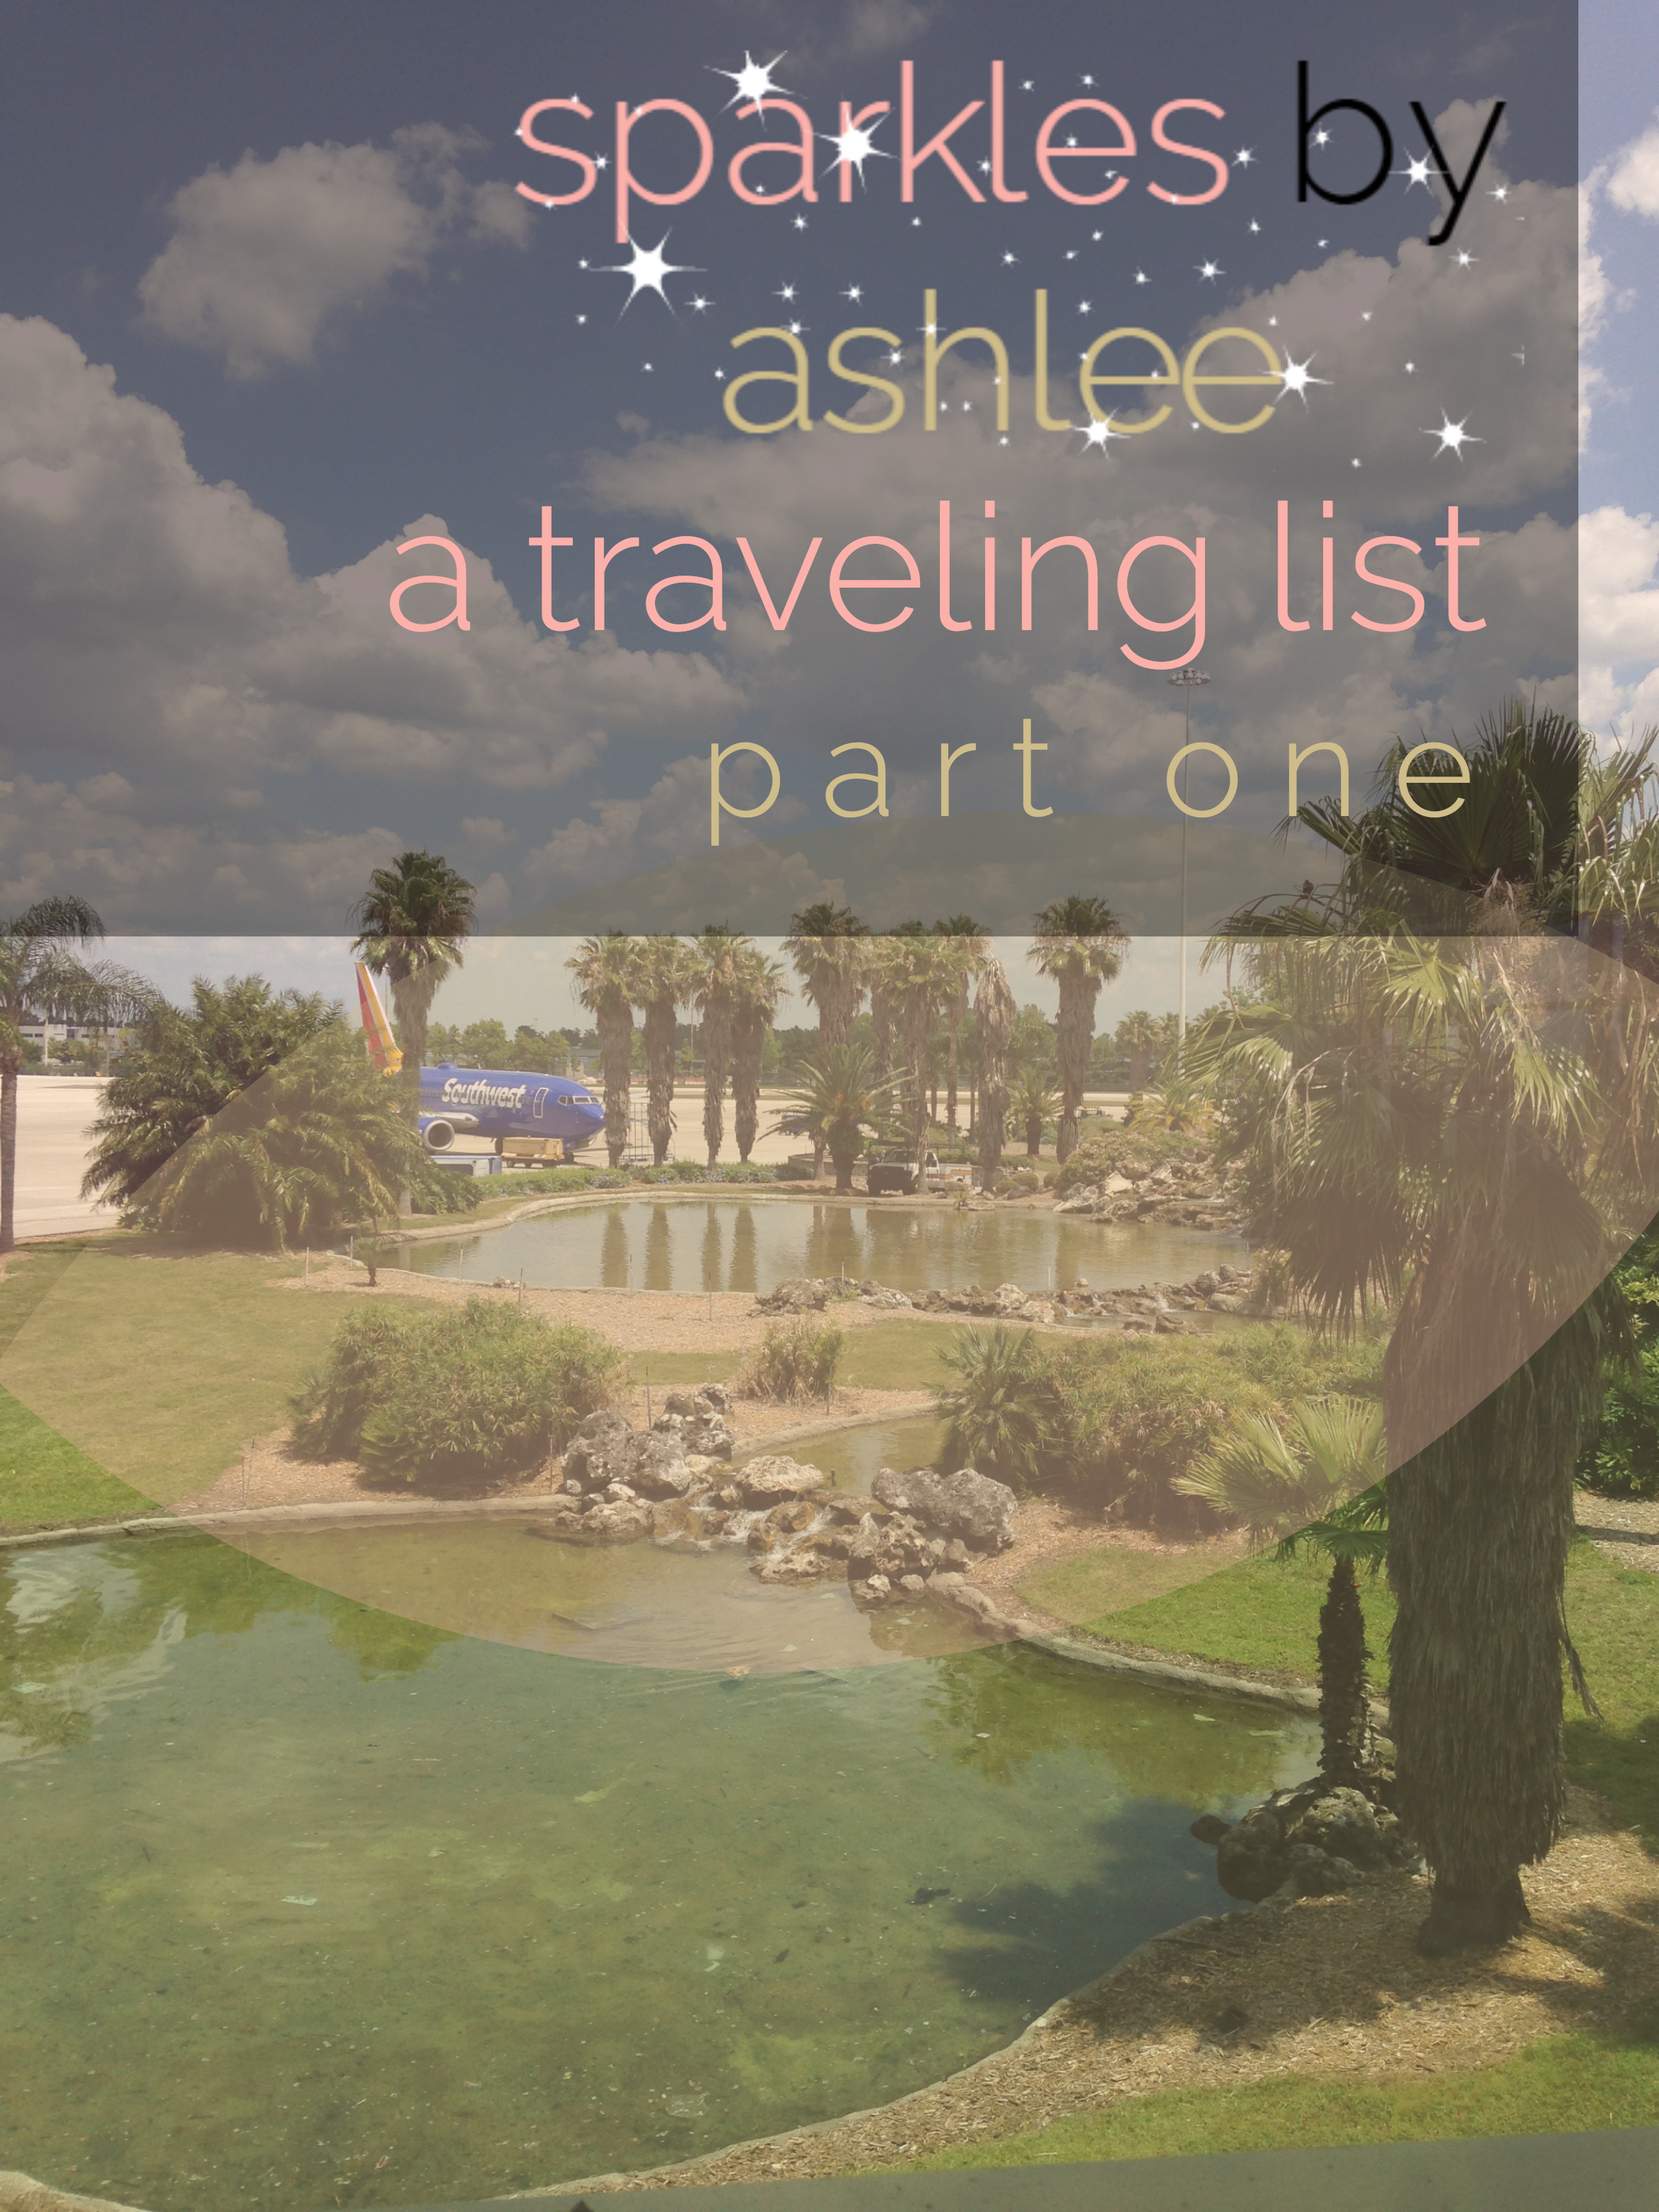 A-Traveling-Wish-List-Sparkles-by-Ashlee.jpg